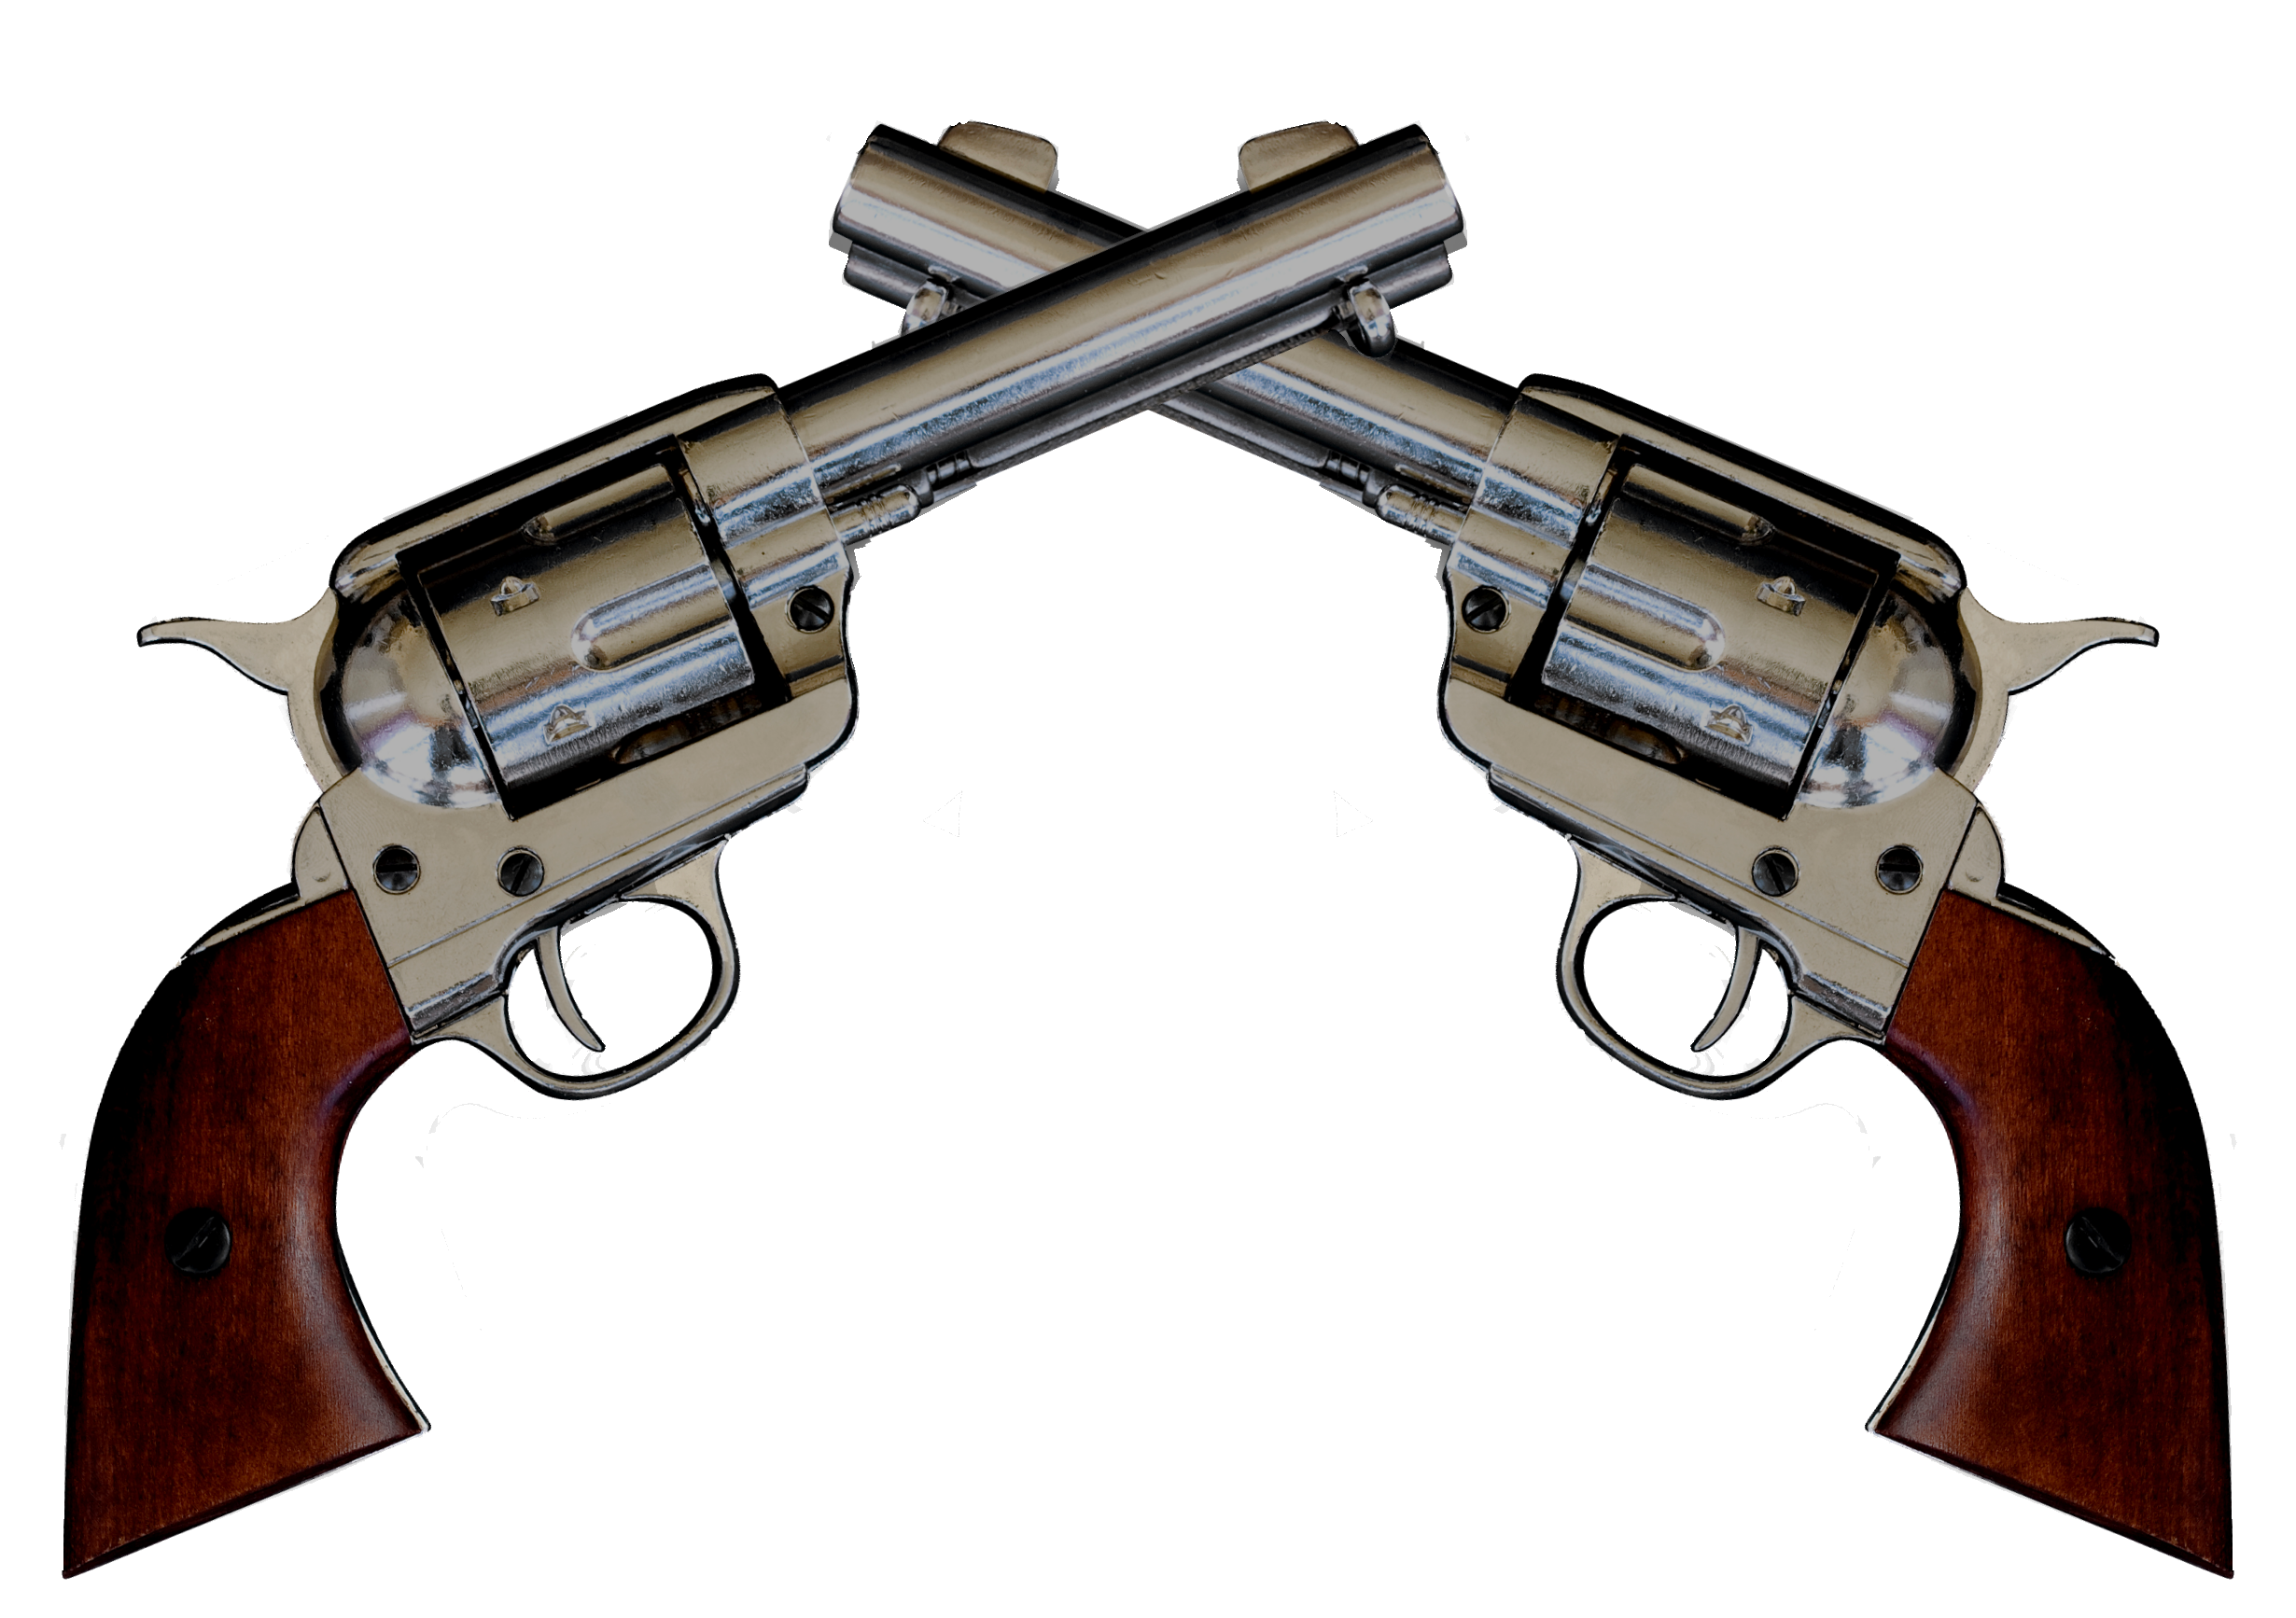 Cowboy revolver png. Western fictioneers wf was